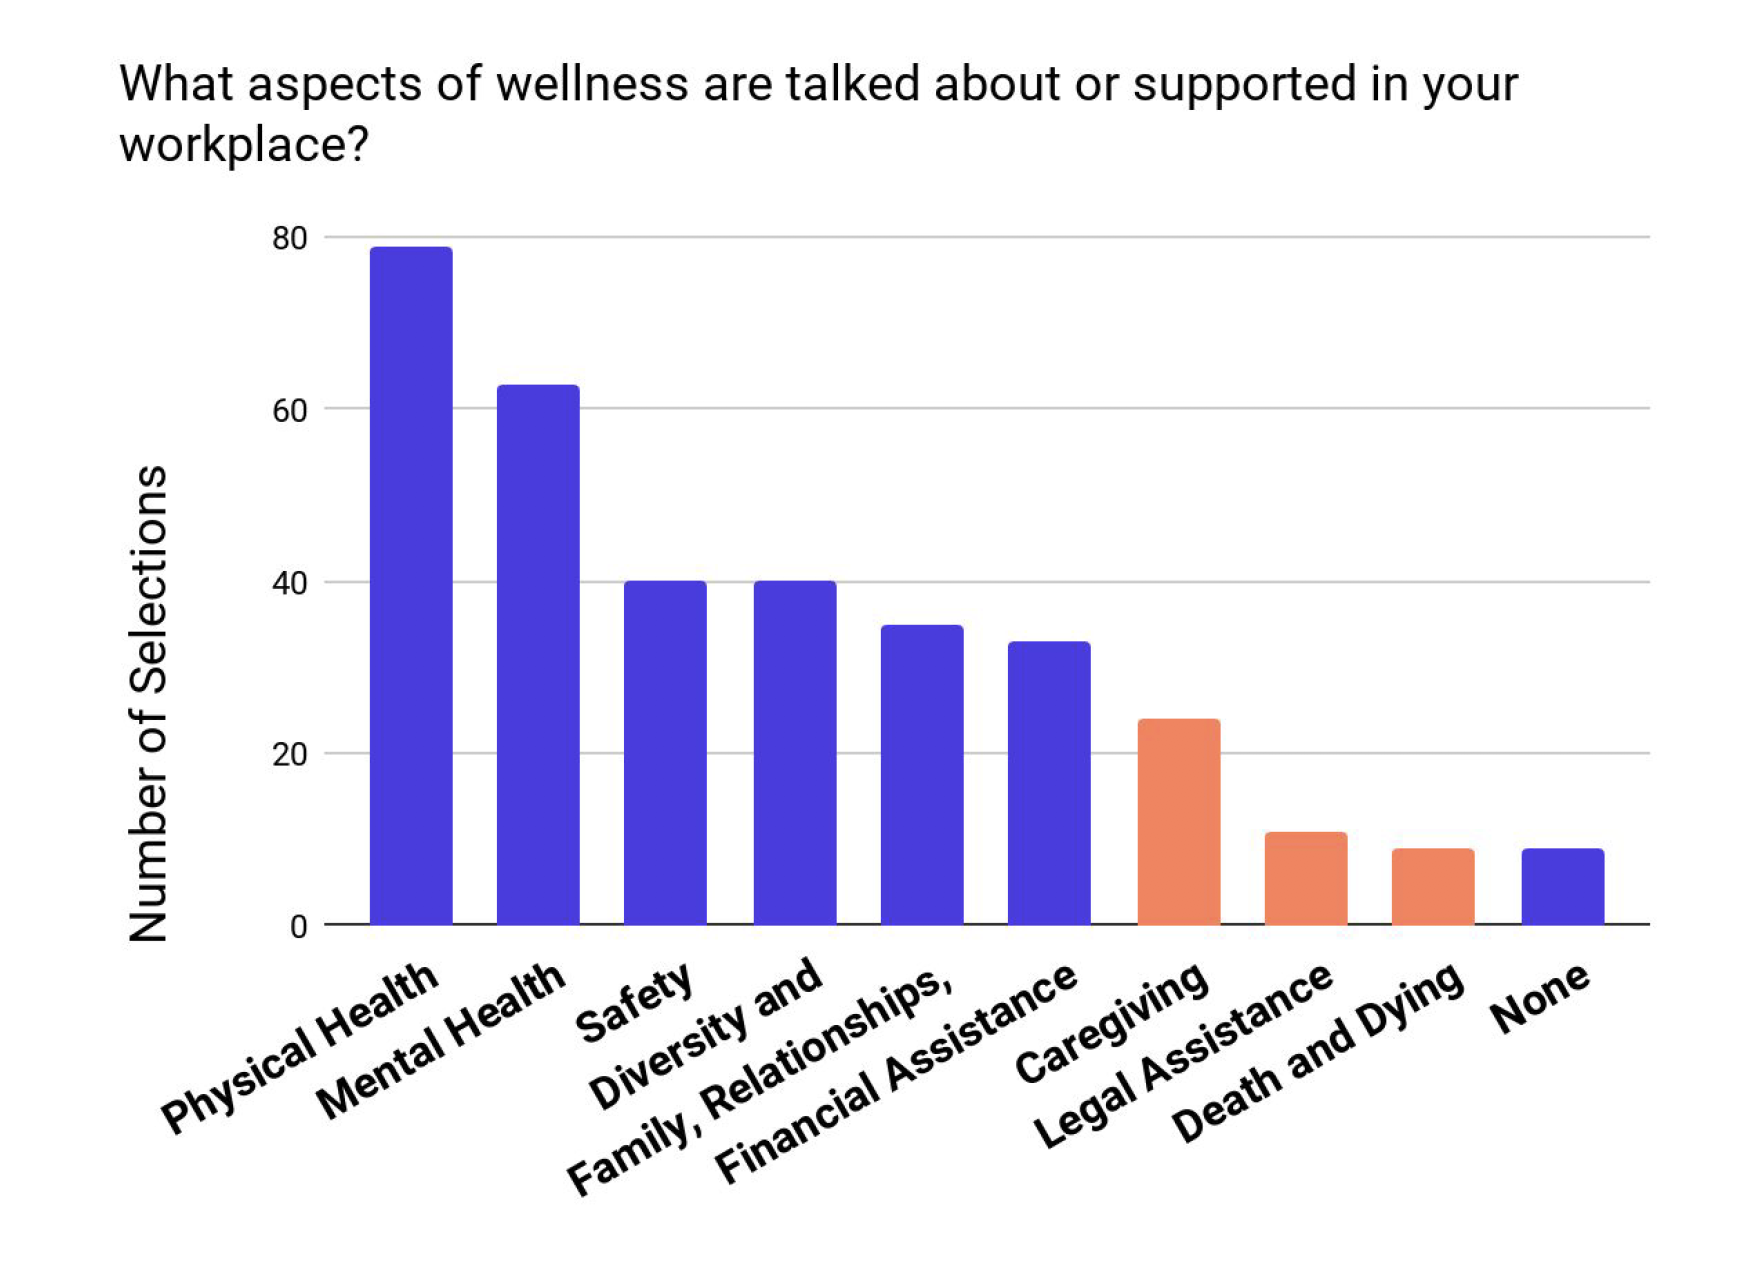 """We asked, """"what aspects of wellness are discussed and supported in the workplace,"""" and found that caregiving, legal assistance, and death and dying were discussed less frequently. This told us that there is need in the workplace for End in Mind's offerings.  We then asked, """"What opportunities do you see in your workplace for greater support around wellness."""" Many of our respondents mentioned a need for the type of support End in Mind offers."""